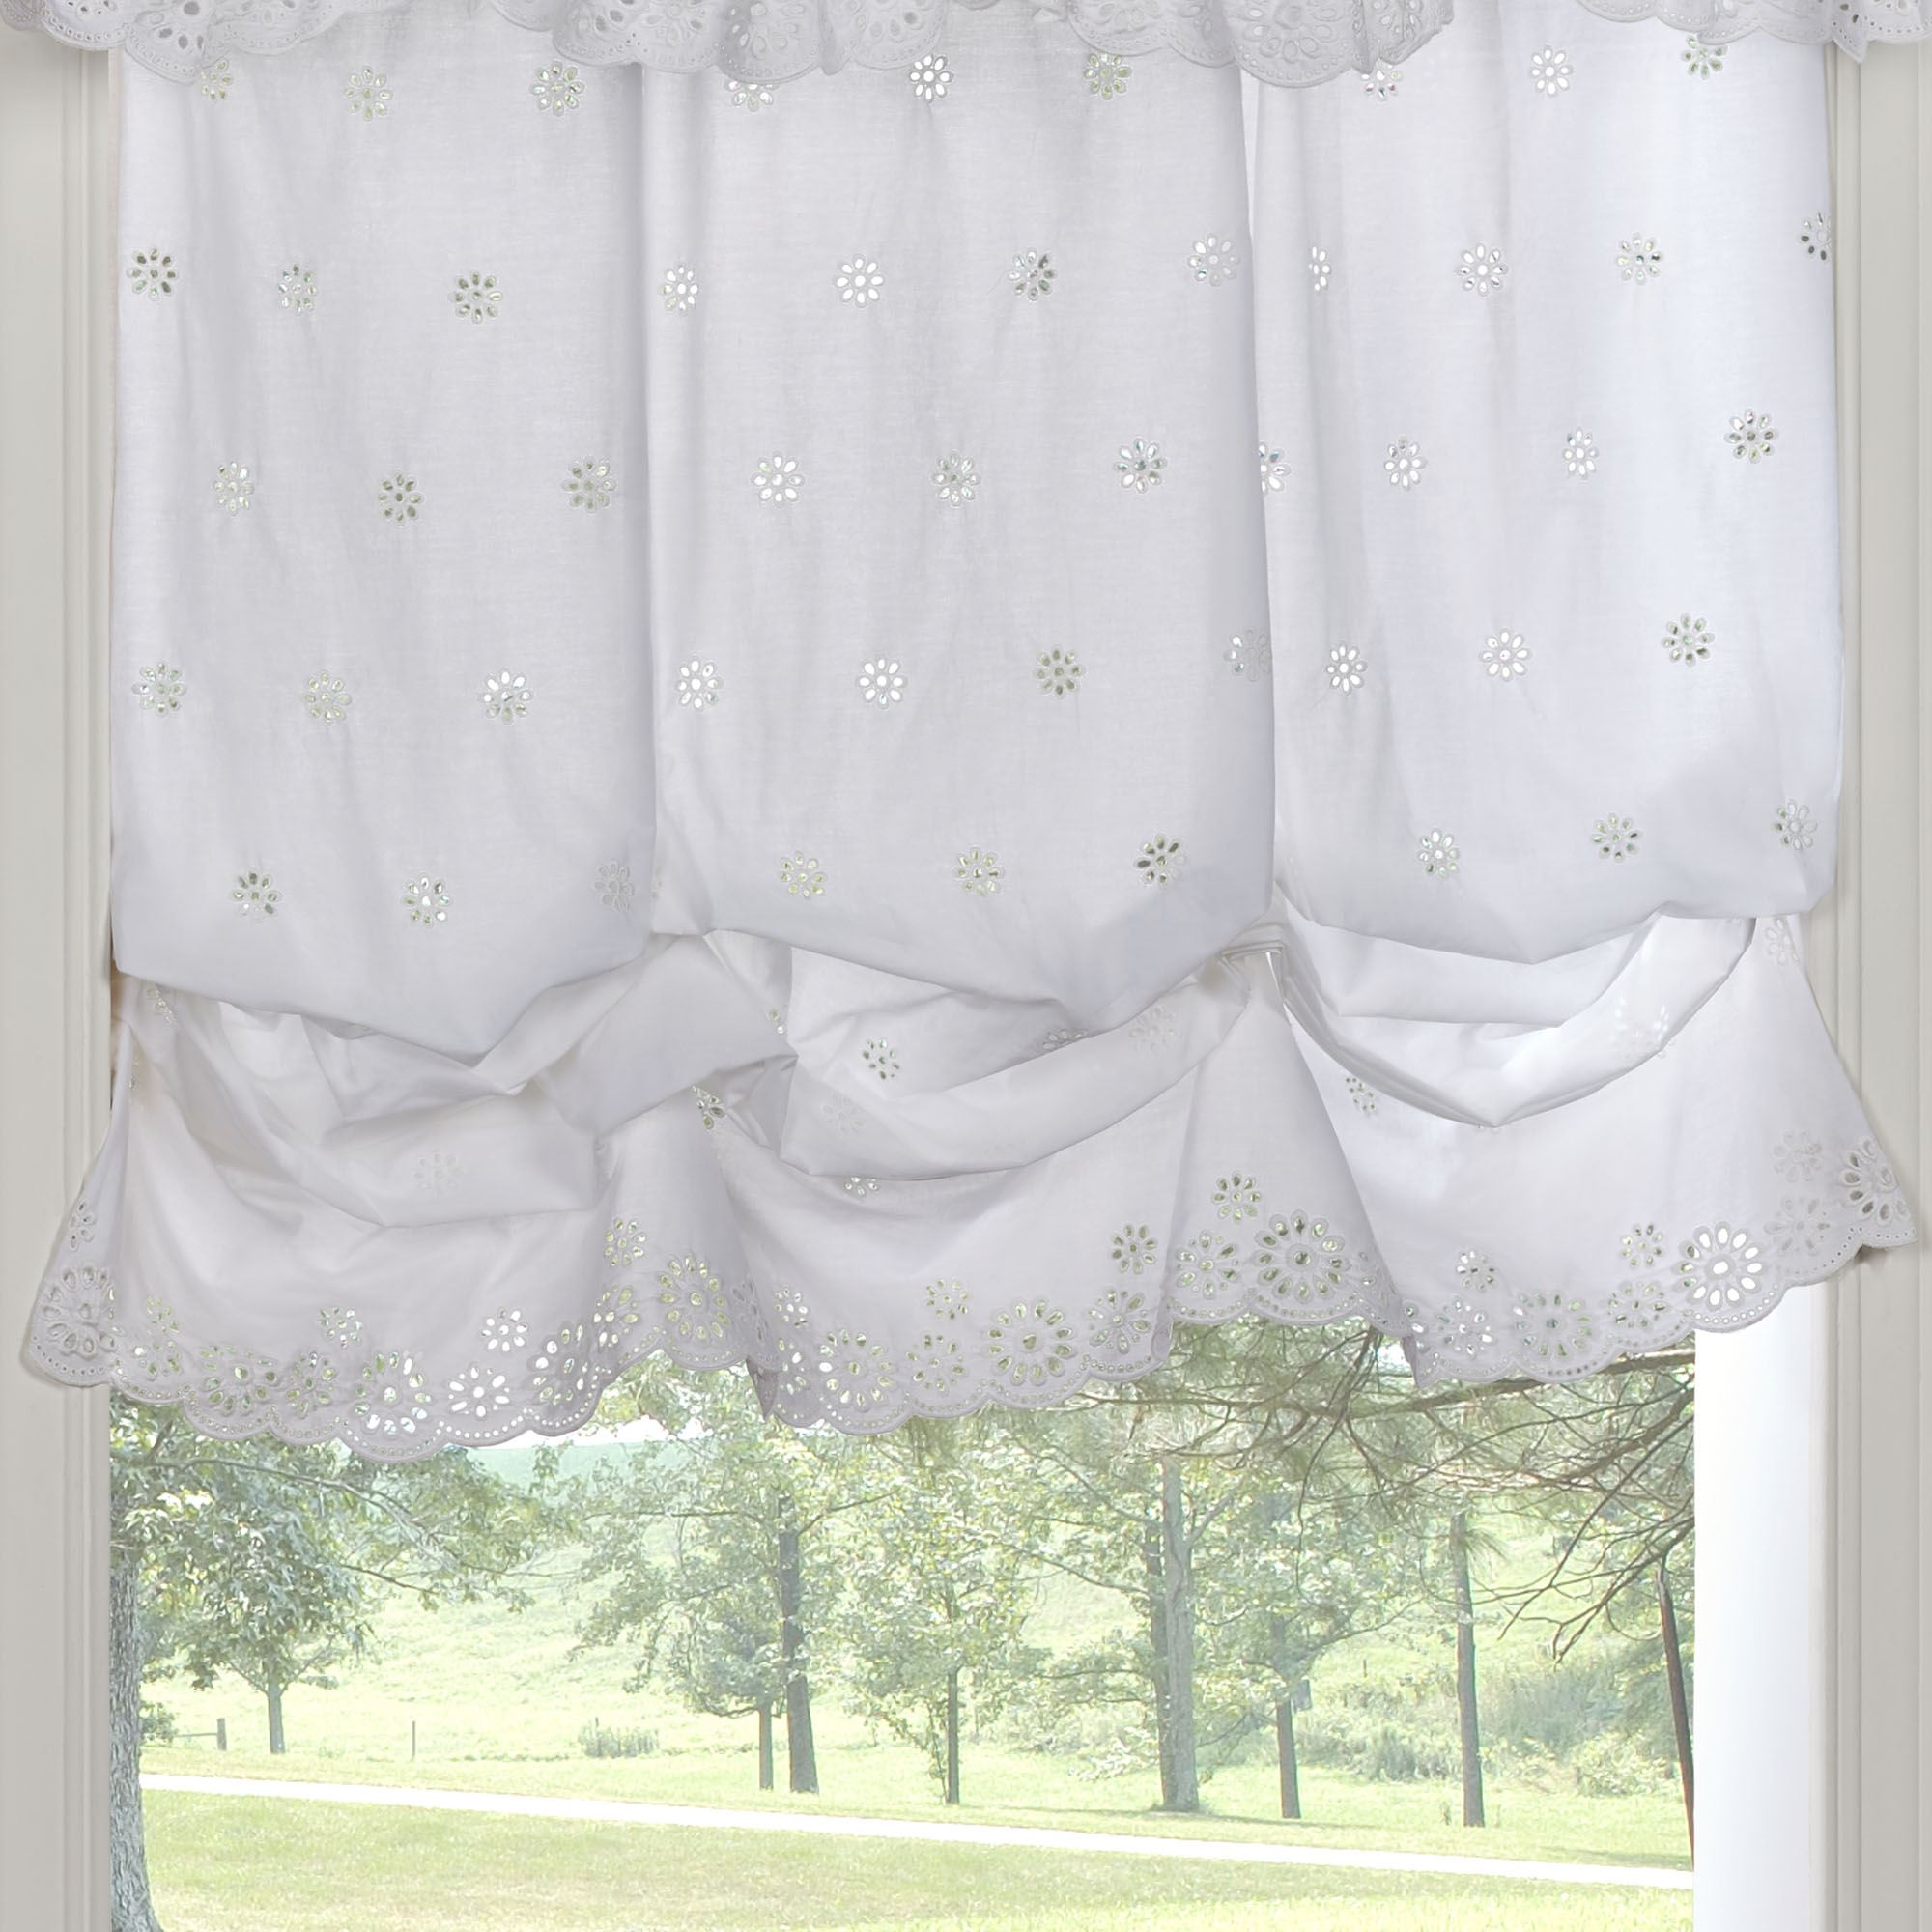 Cottage Rose White Eyelet Balloon Window Shade